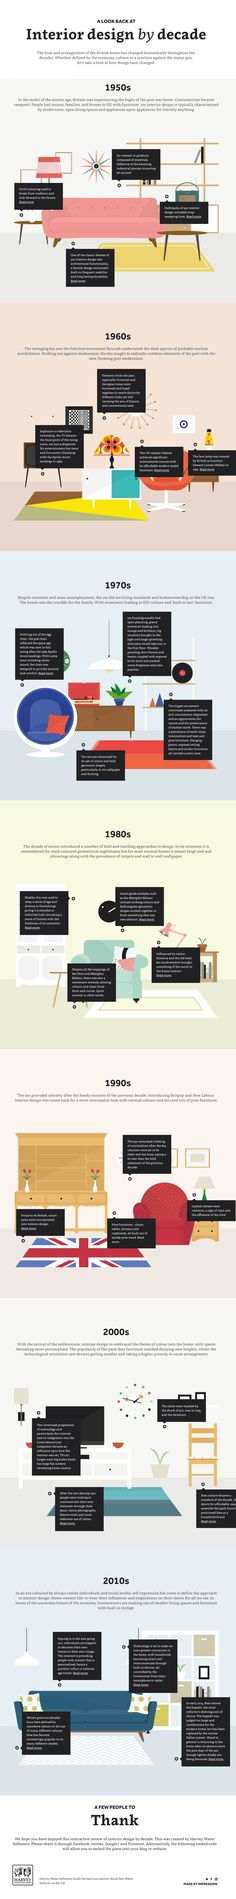 Interior Design: An Interactive History by Decade. http://www.harveywatersofteners.co.uk/history-interior-design